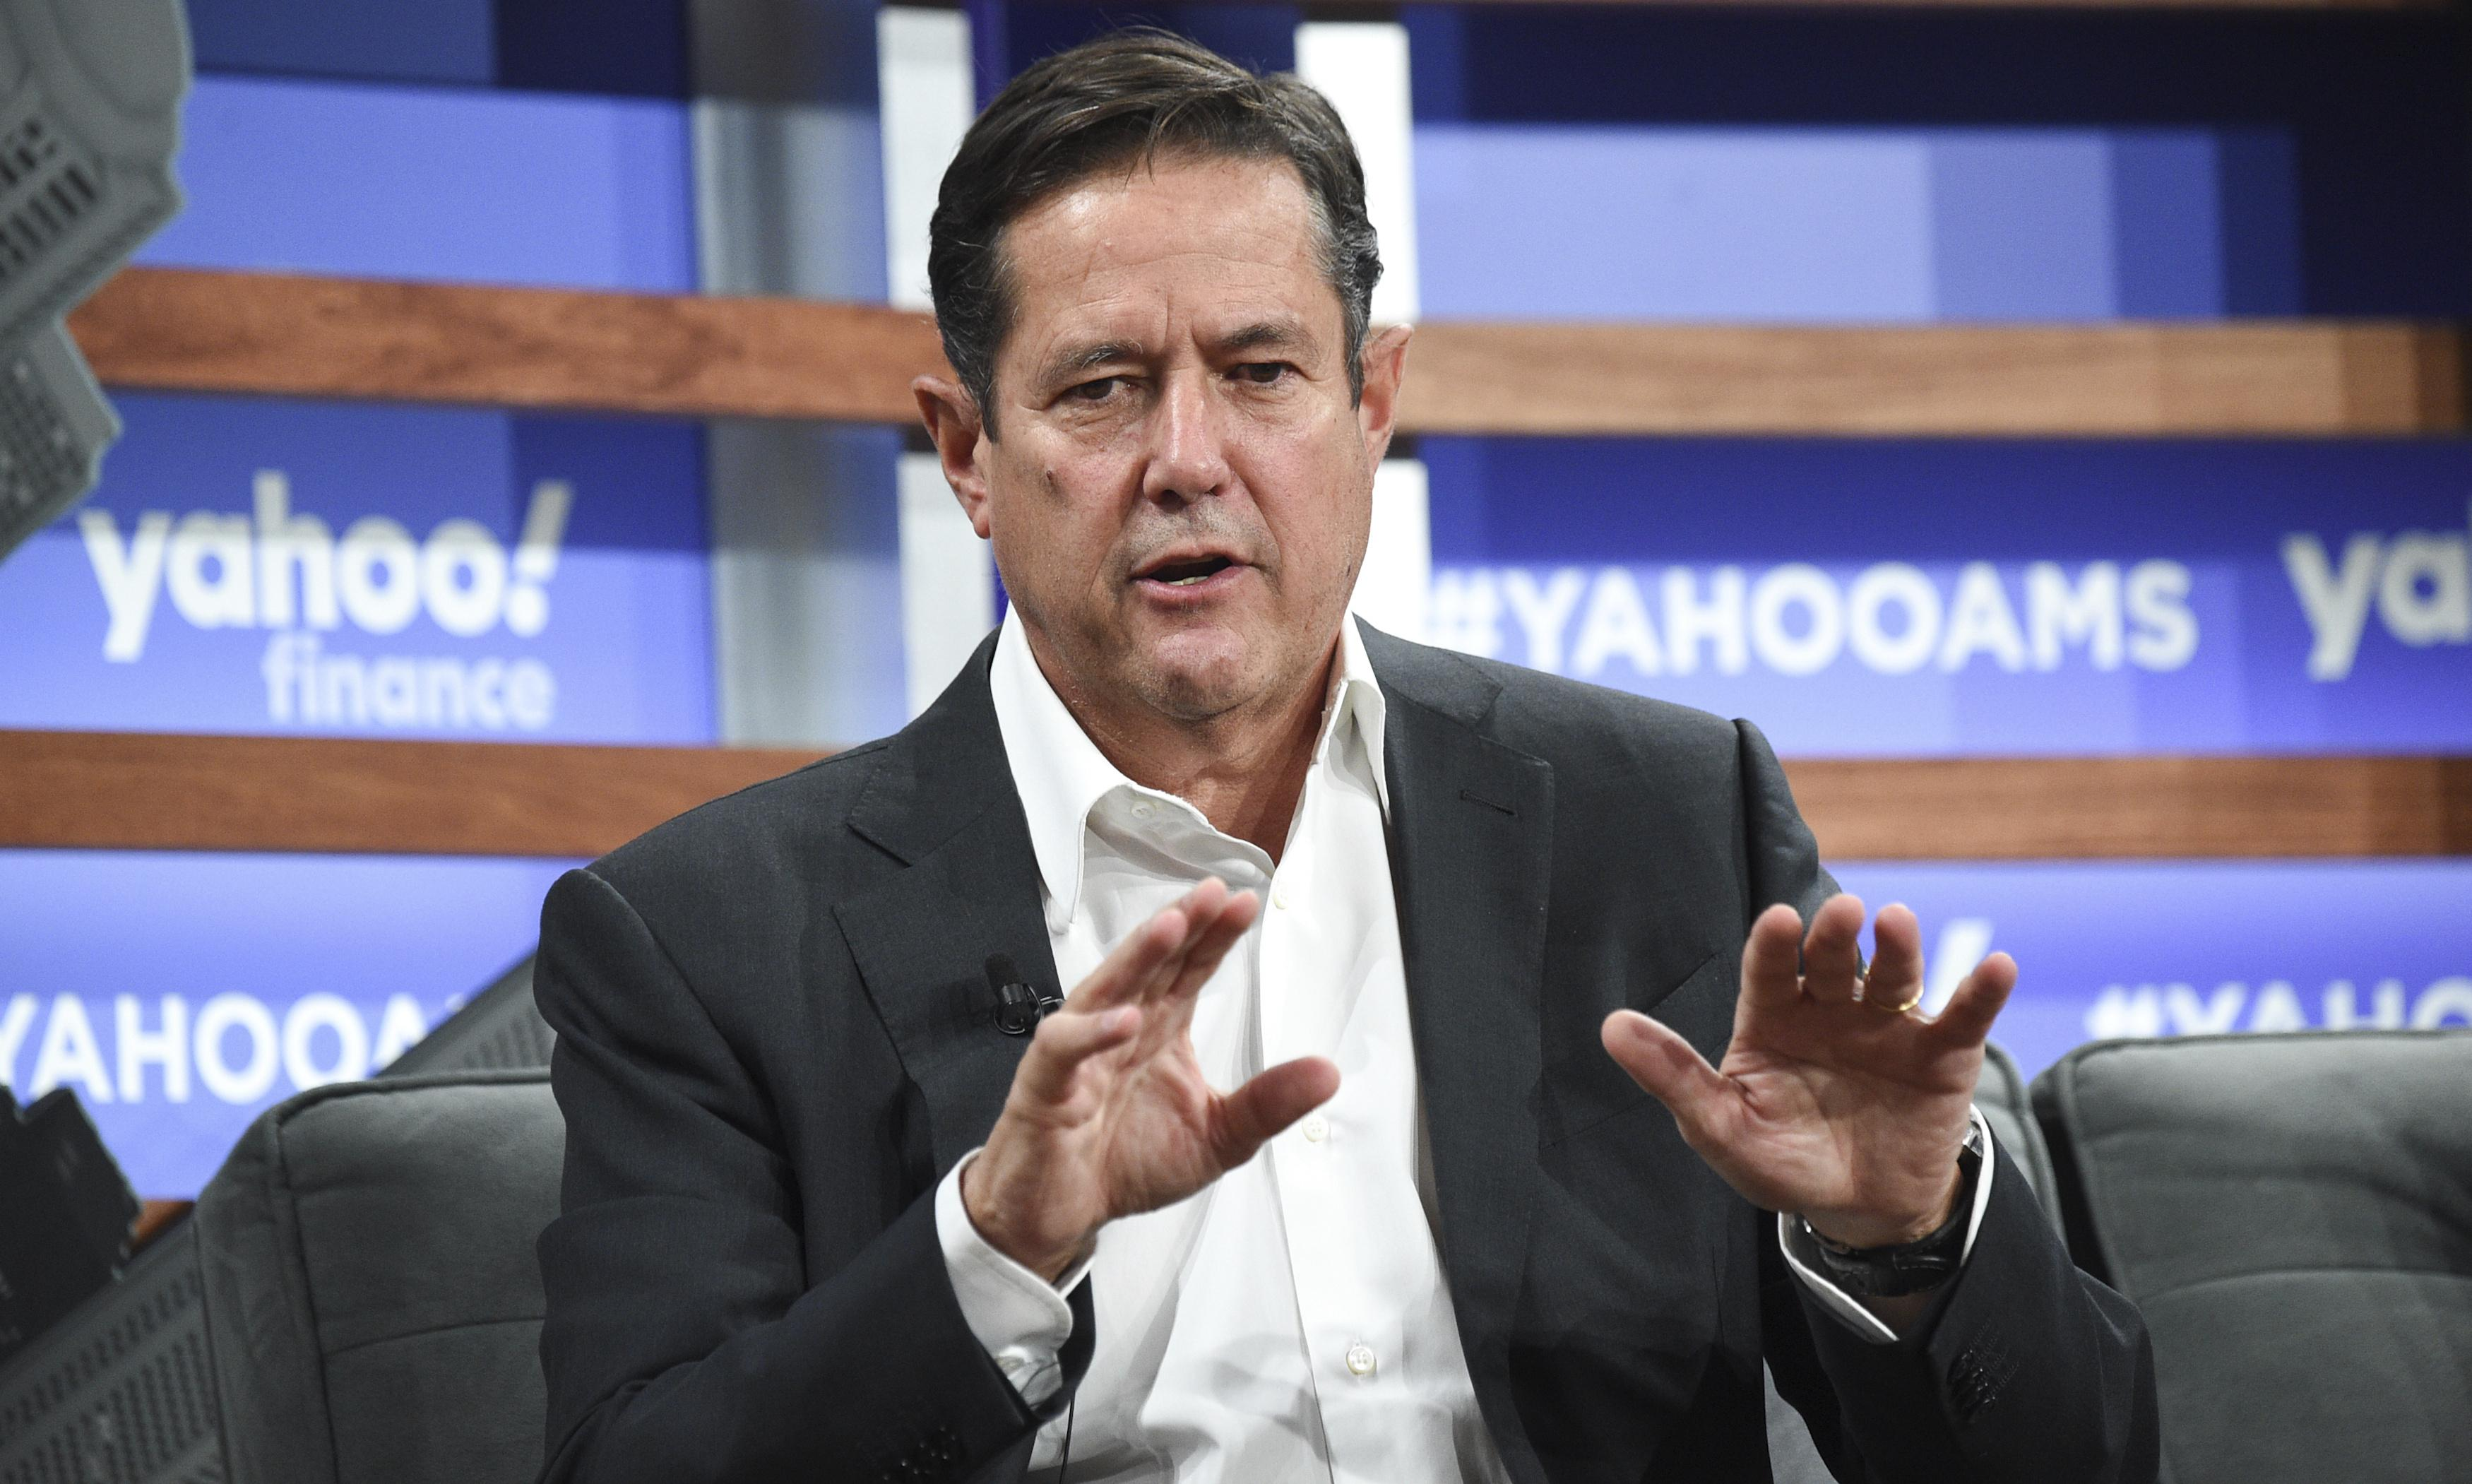 Barclays boss Jes Staley's links to Jeffrey Epstein investigated